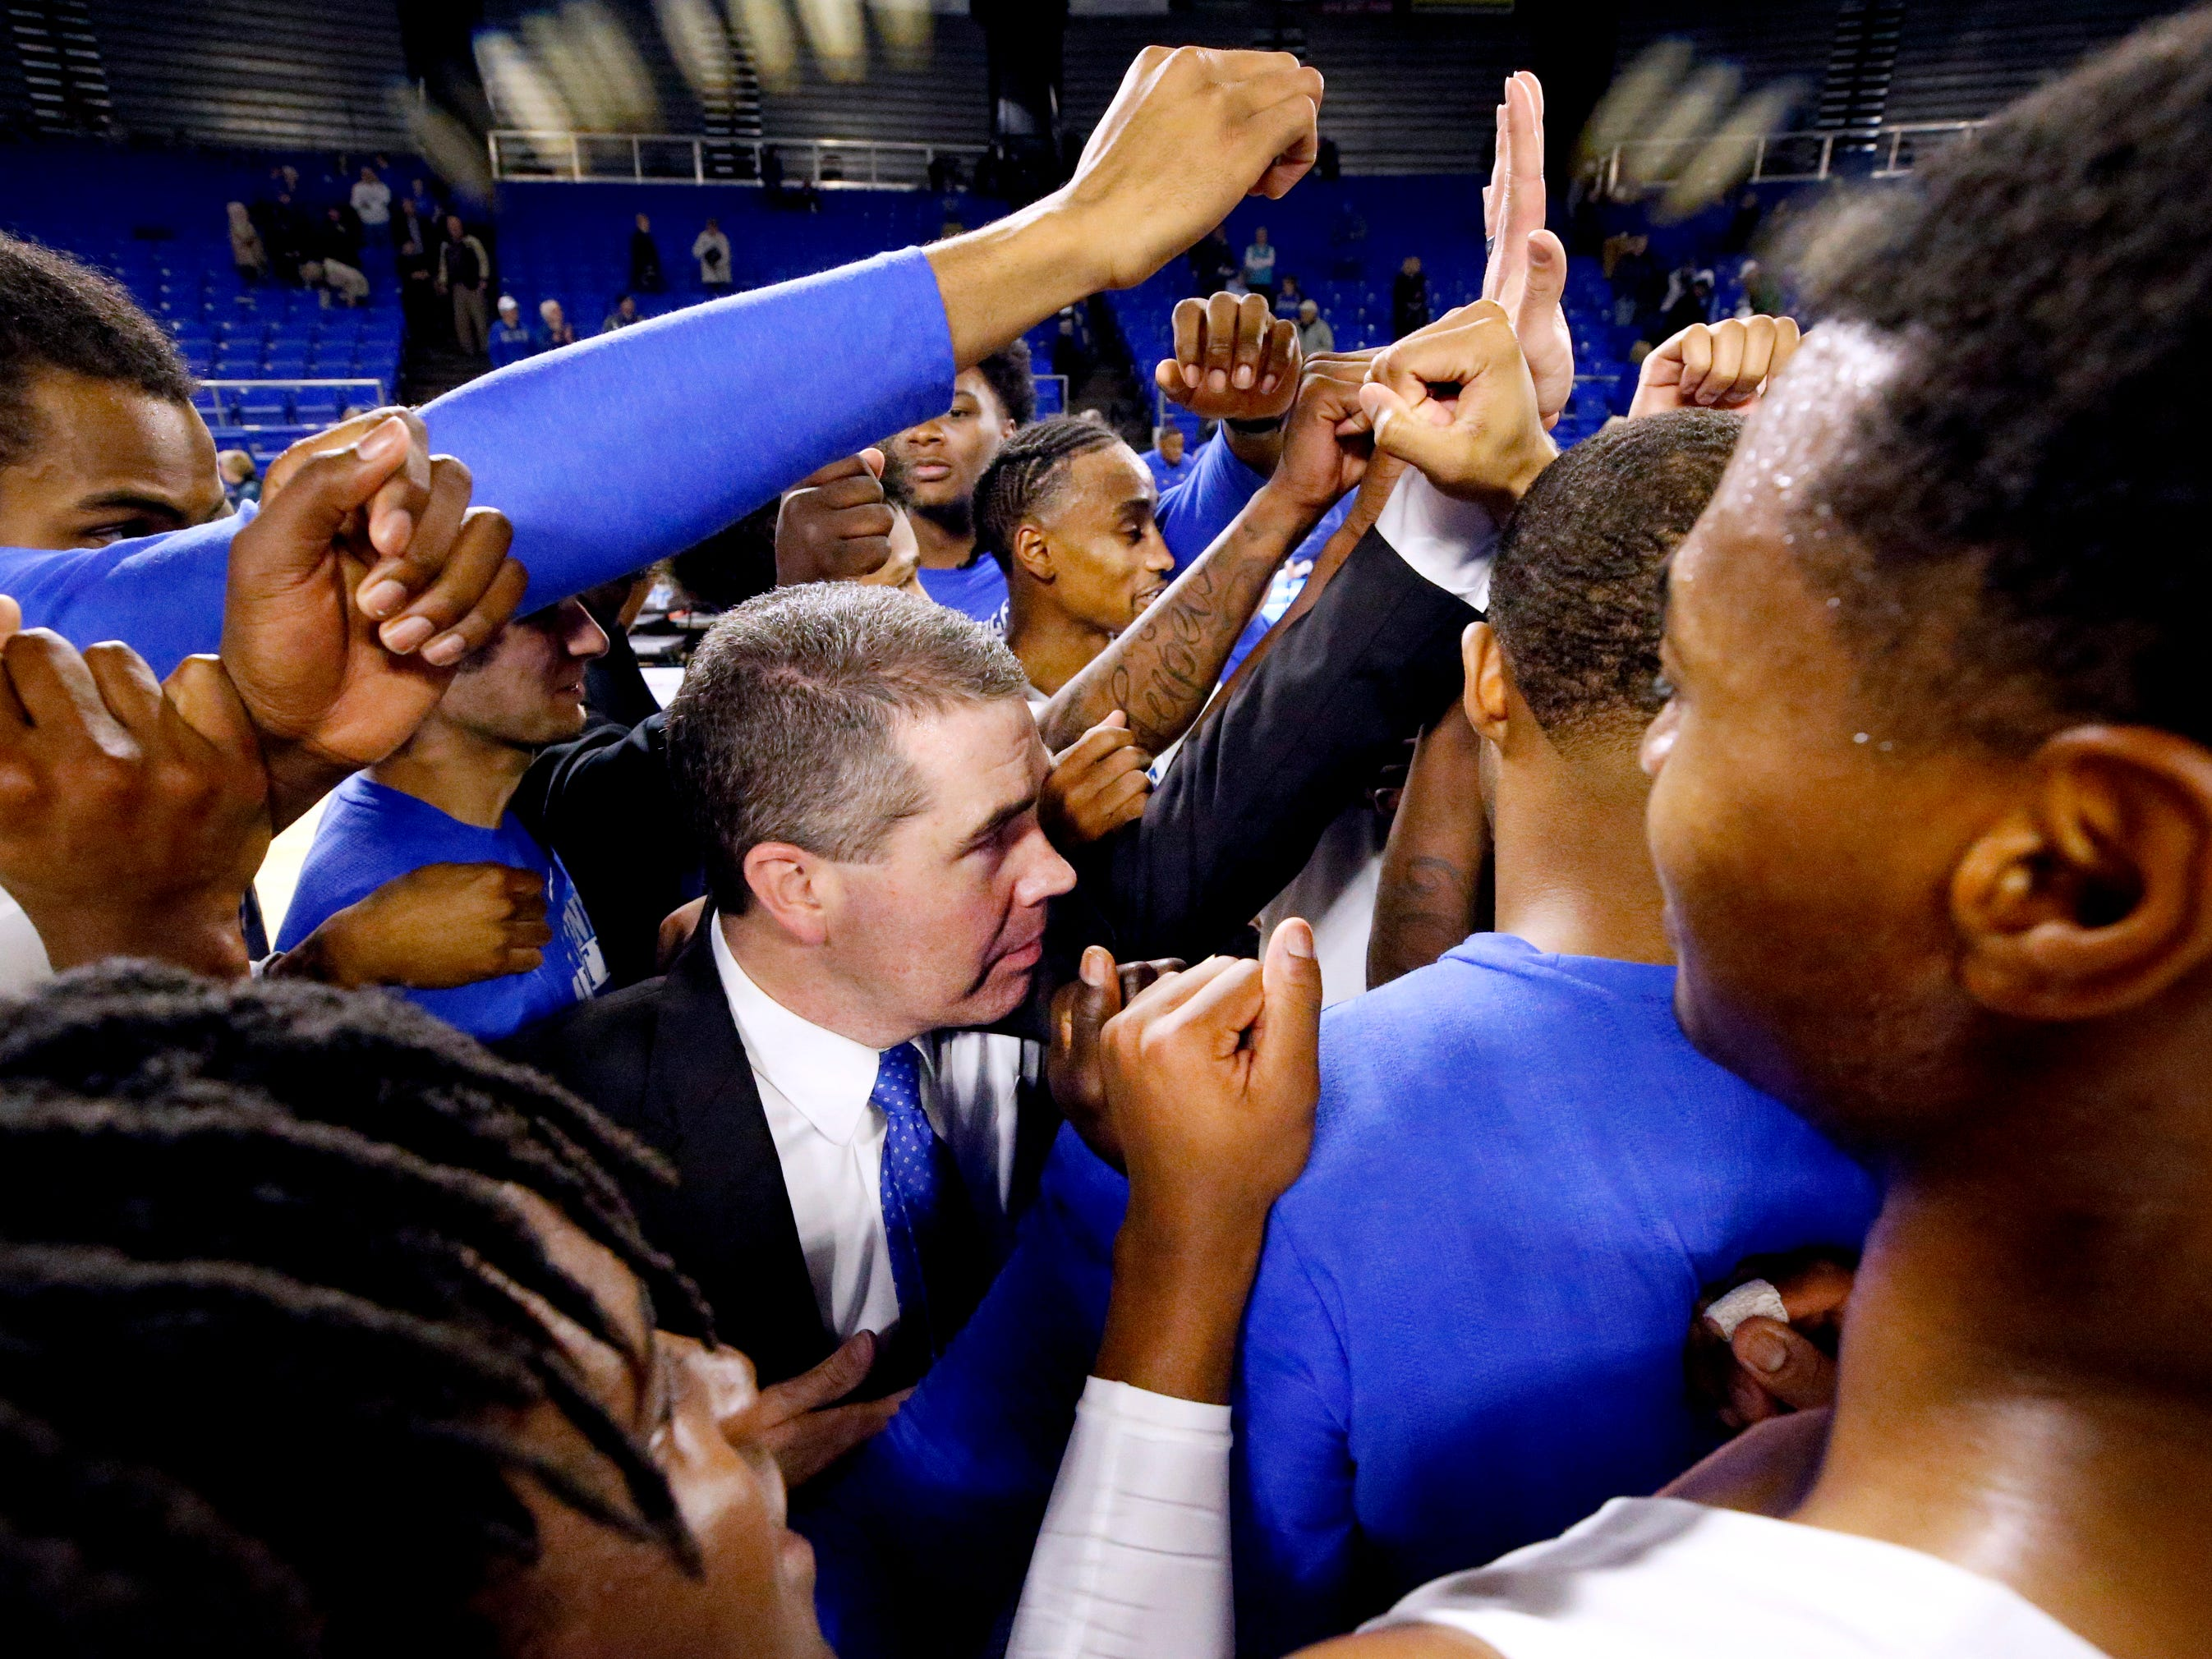 MTSU's head coach Nick McDevitt celebrates the 89-86 win over UTSA on Thursday Jan. 17, 2019, after the game.